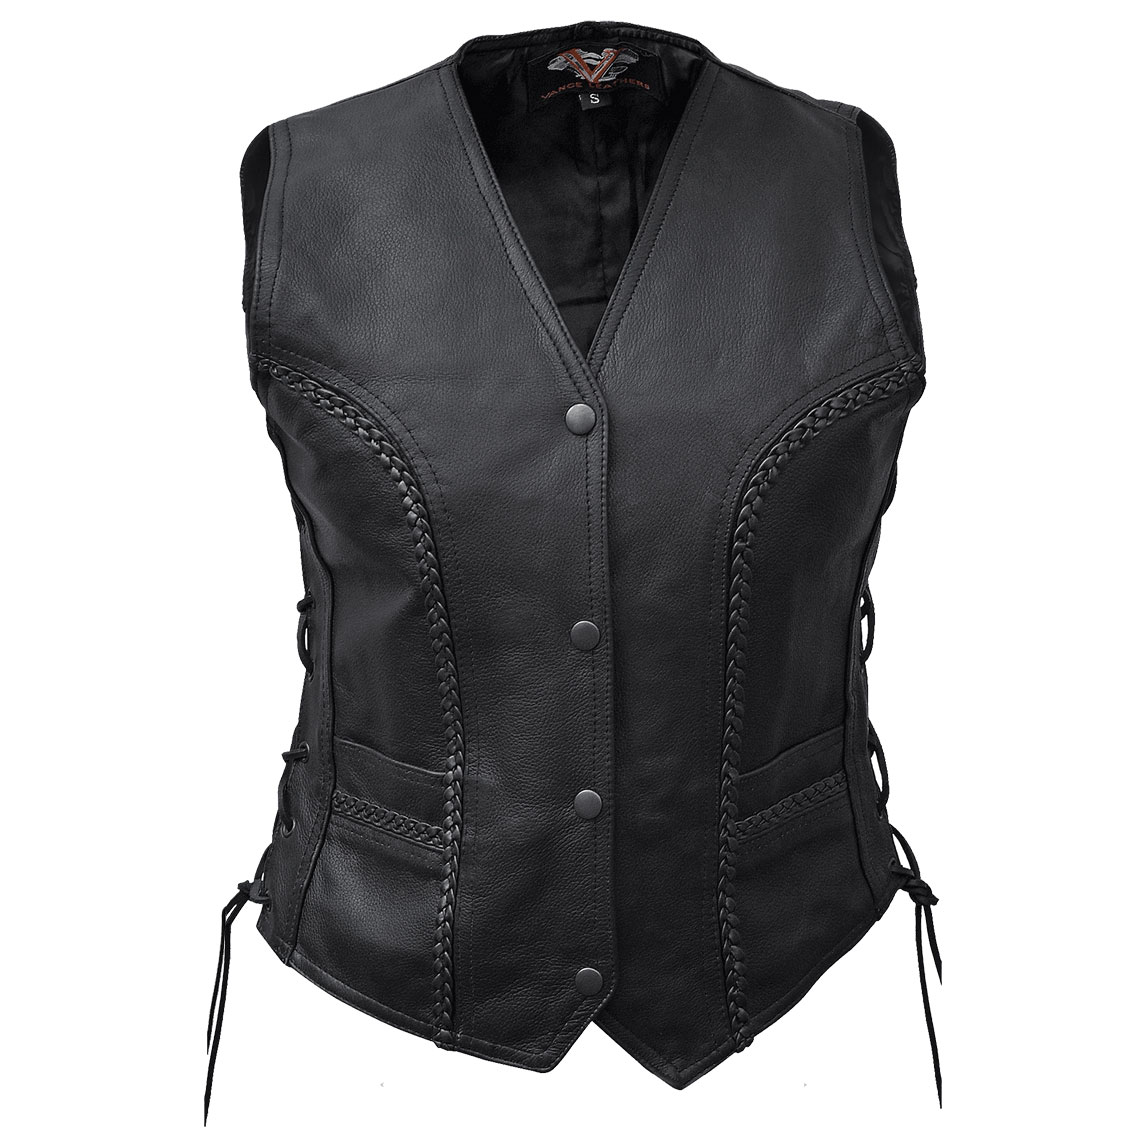 Vance Leathers Women's Side Lace Braided Black Leather Vest